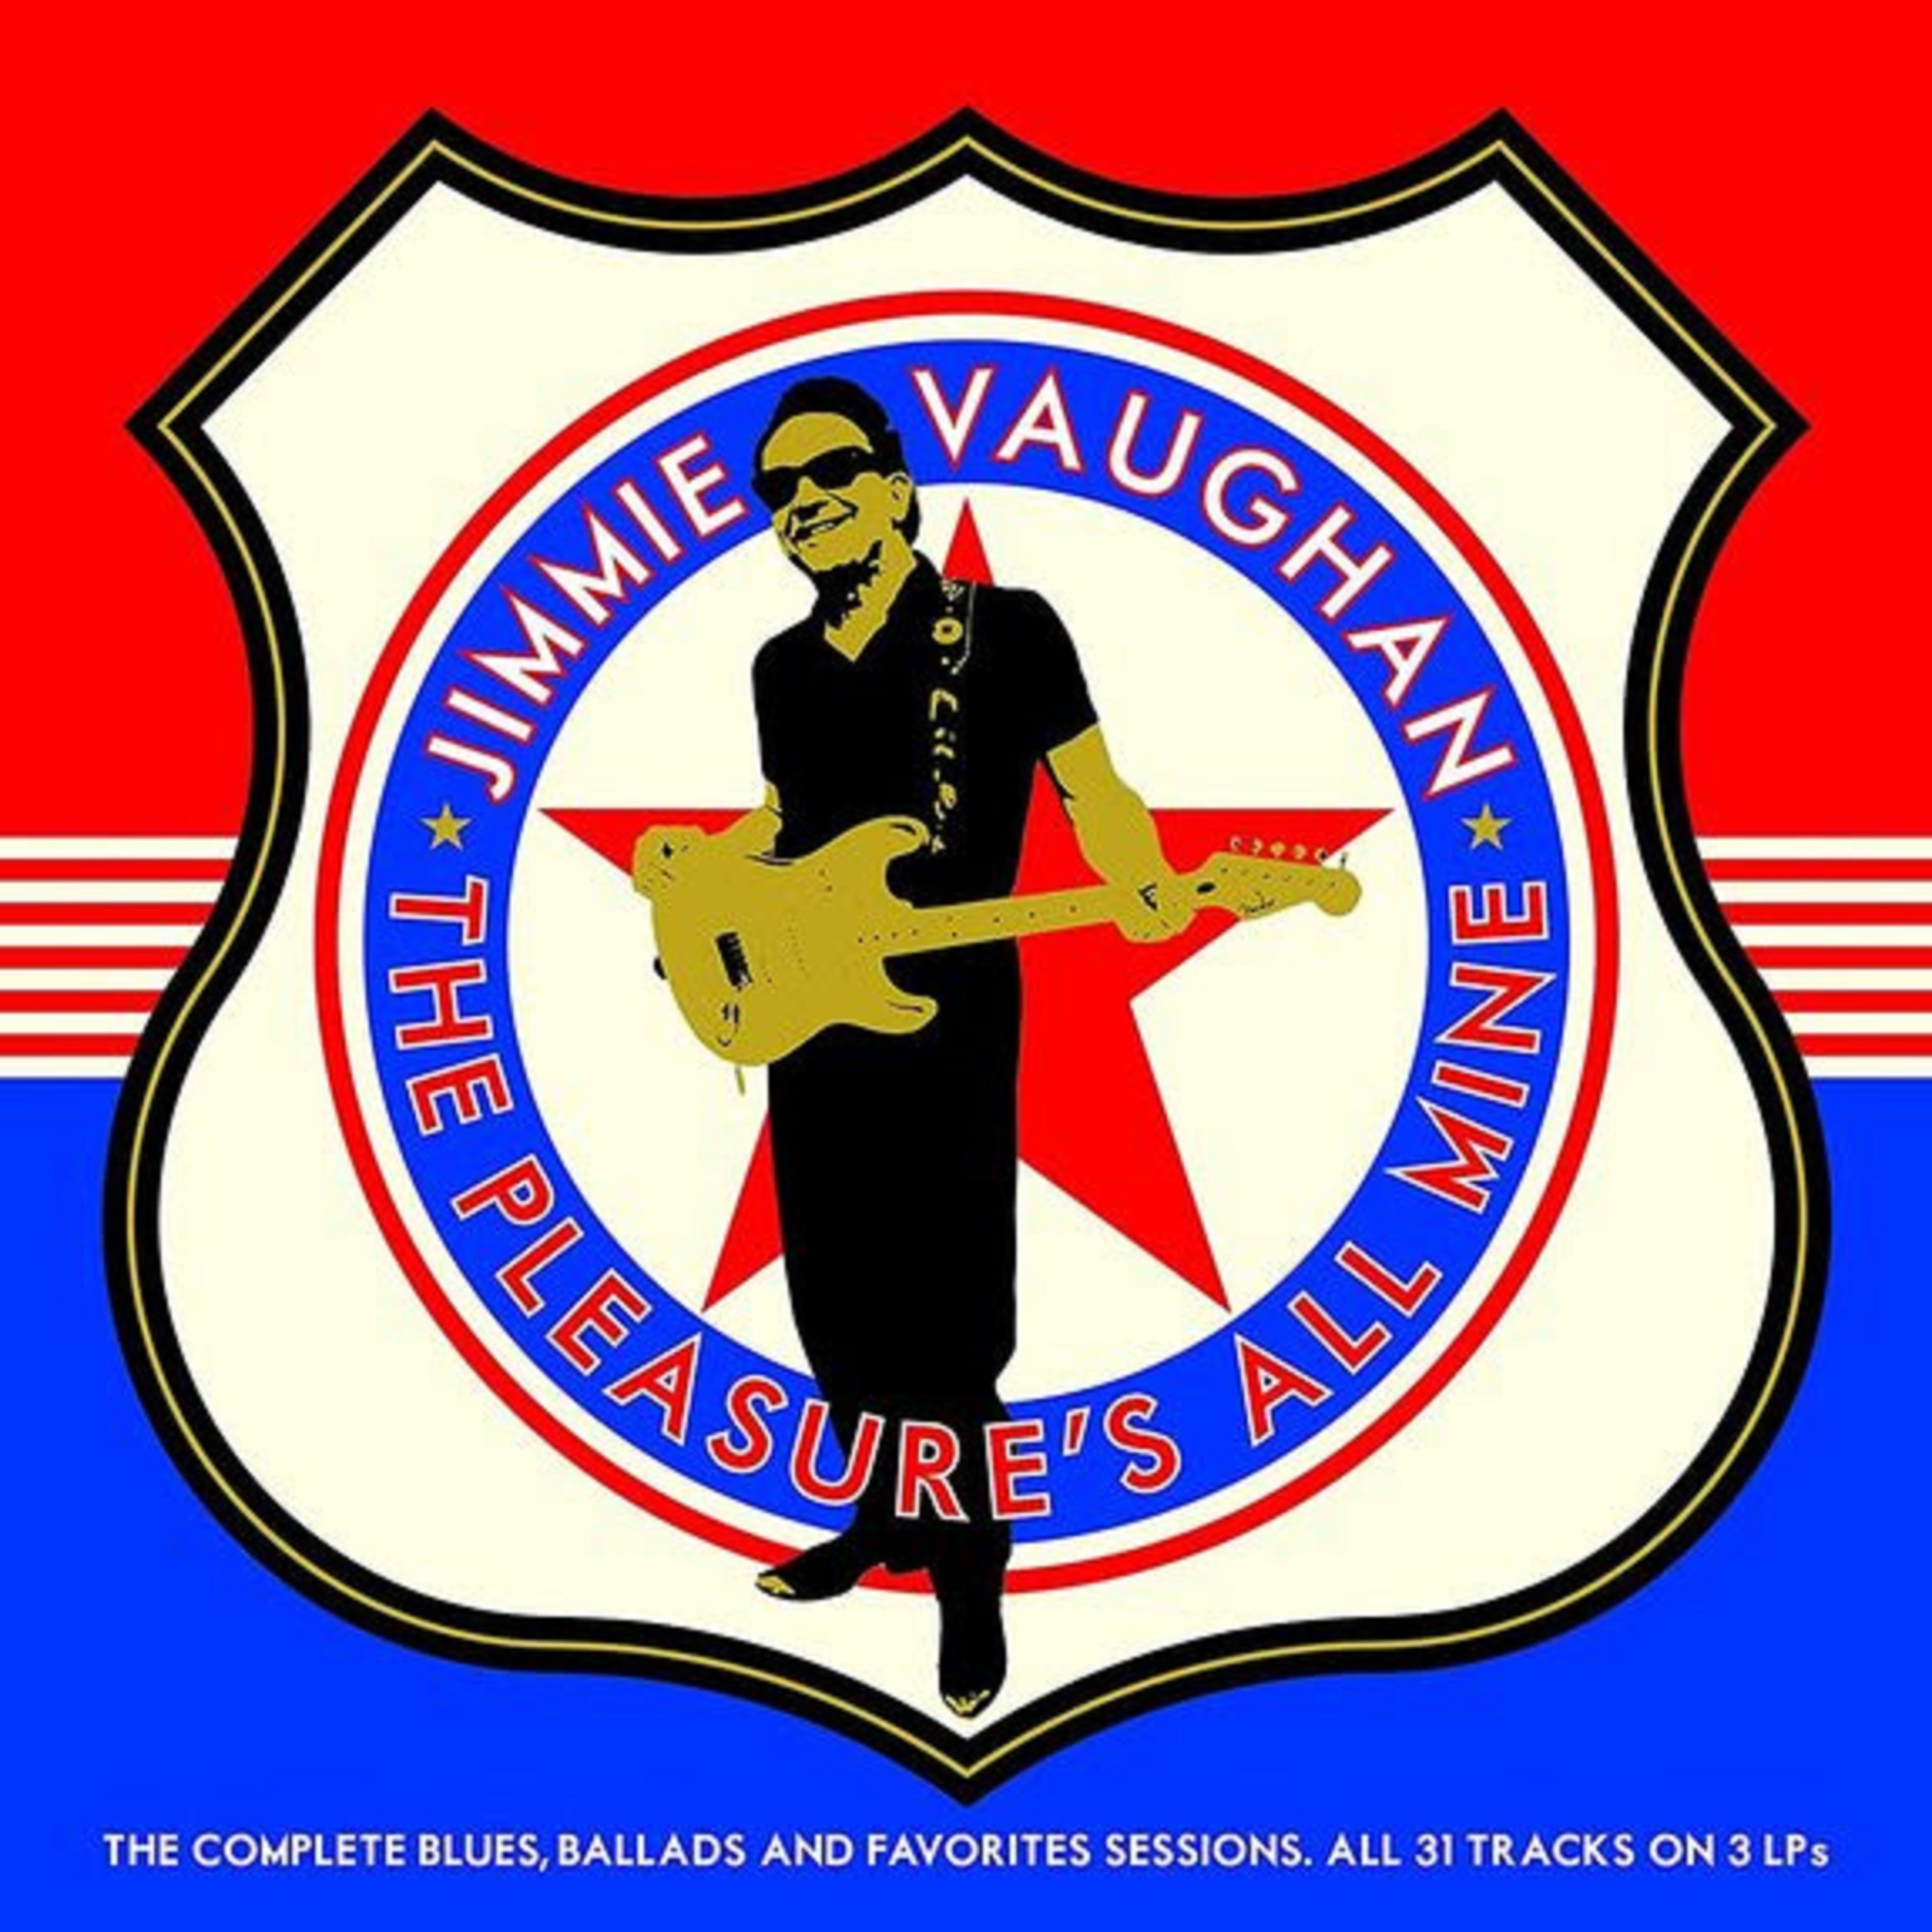 Jimmie Vaughan's 'The Pleasure's All Mine: The Complete Blues, Ballads and Favorites Collection' out Oct. 30